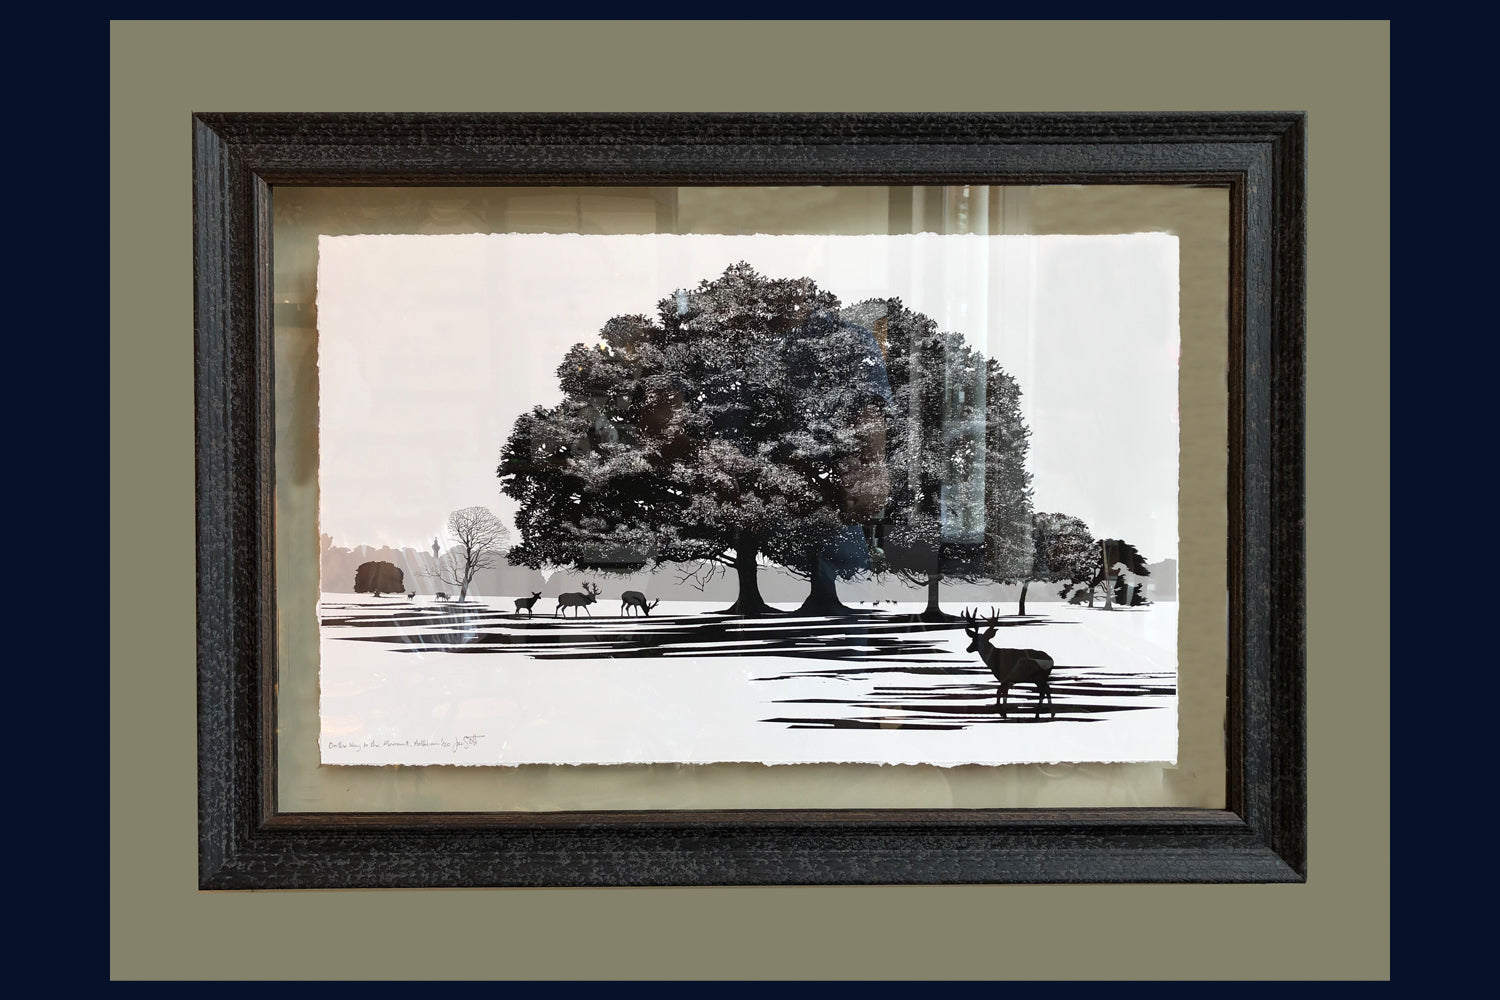 Floated & Framed Arboretum Collection 'On the Way to the Monument, Holkham, Norfolk' Limited Edition 6 of 50 Fine Art Print